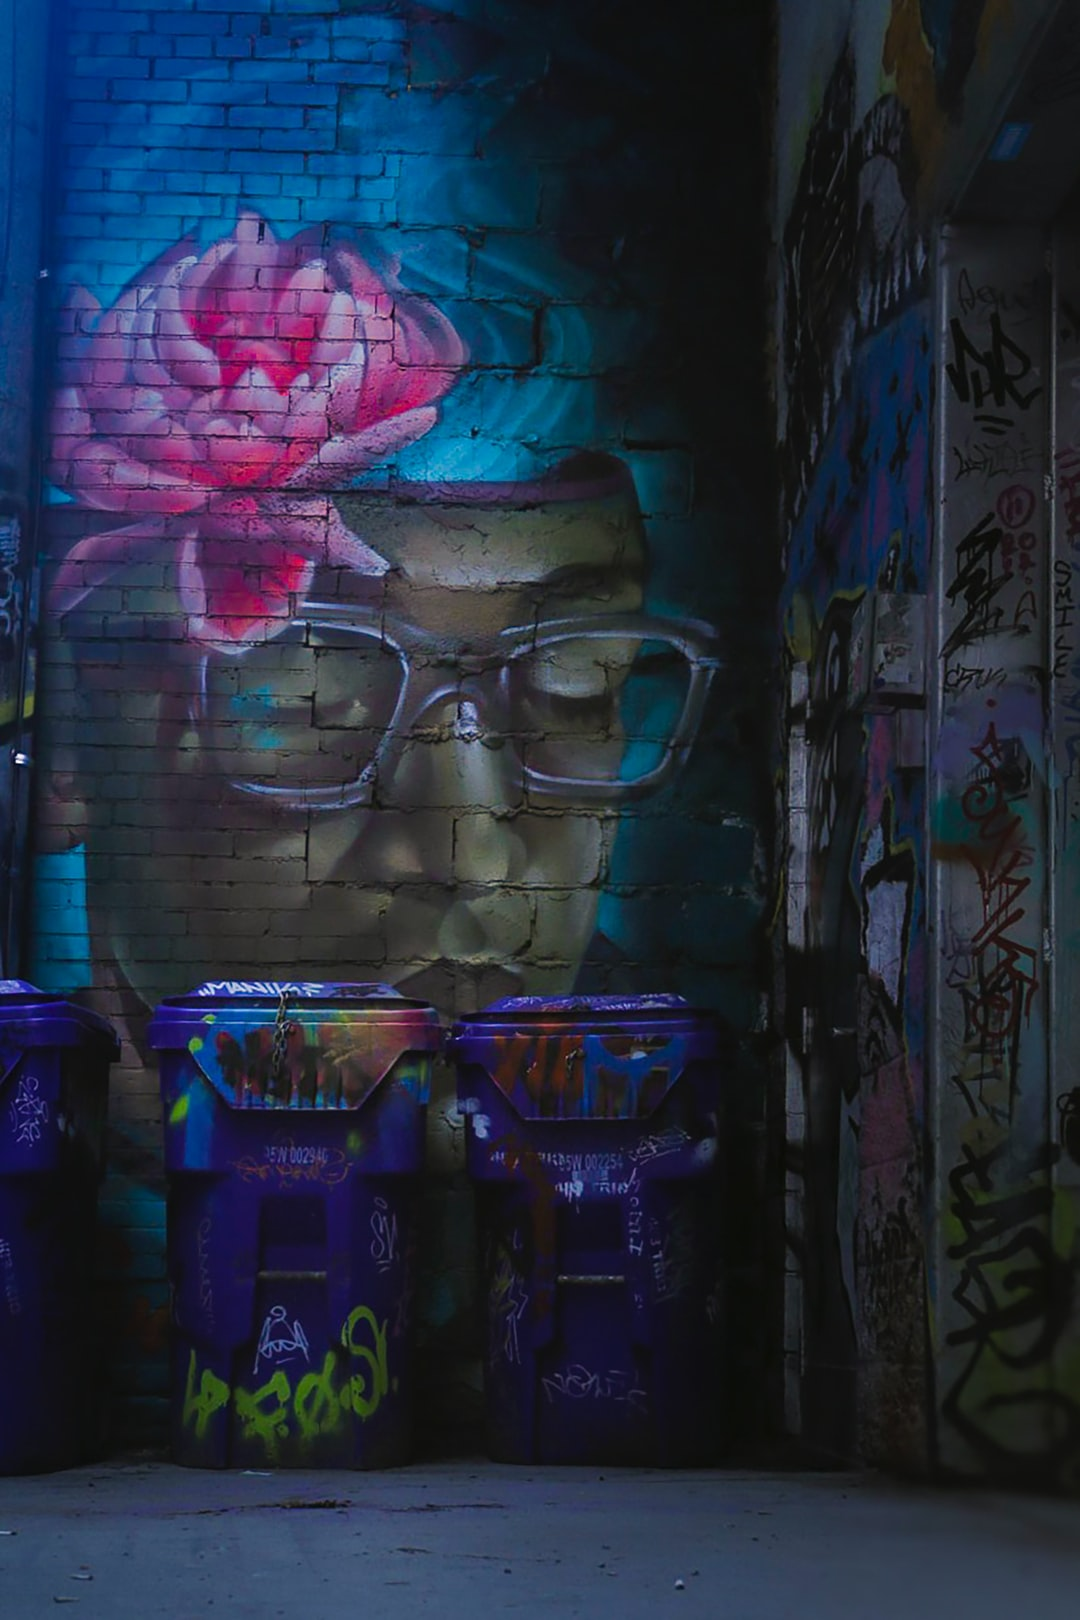 """""""One man's trash is another's treasure"""" perfect caption for this shot taken in Toronto's Graffiti Alley"""